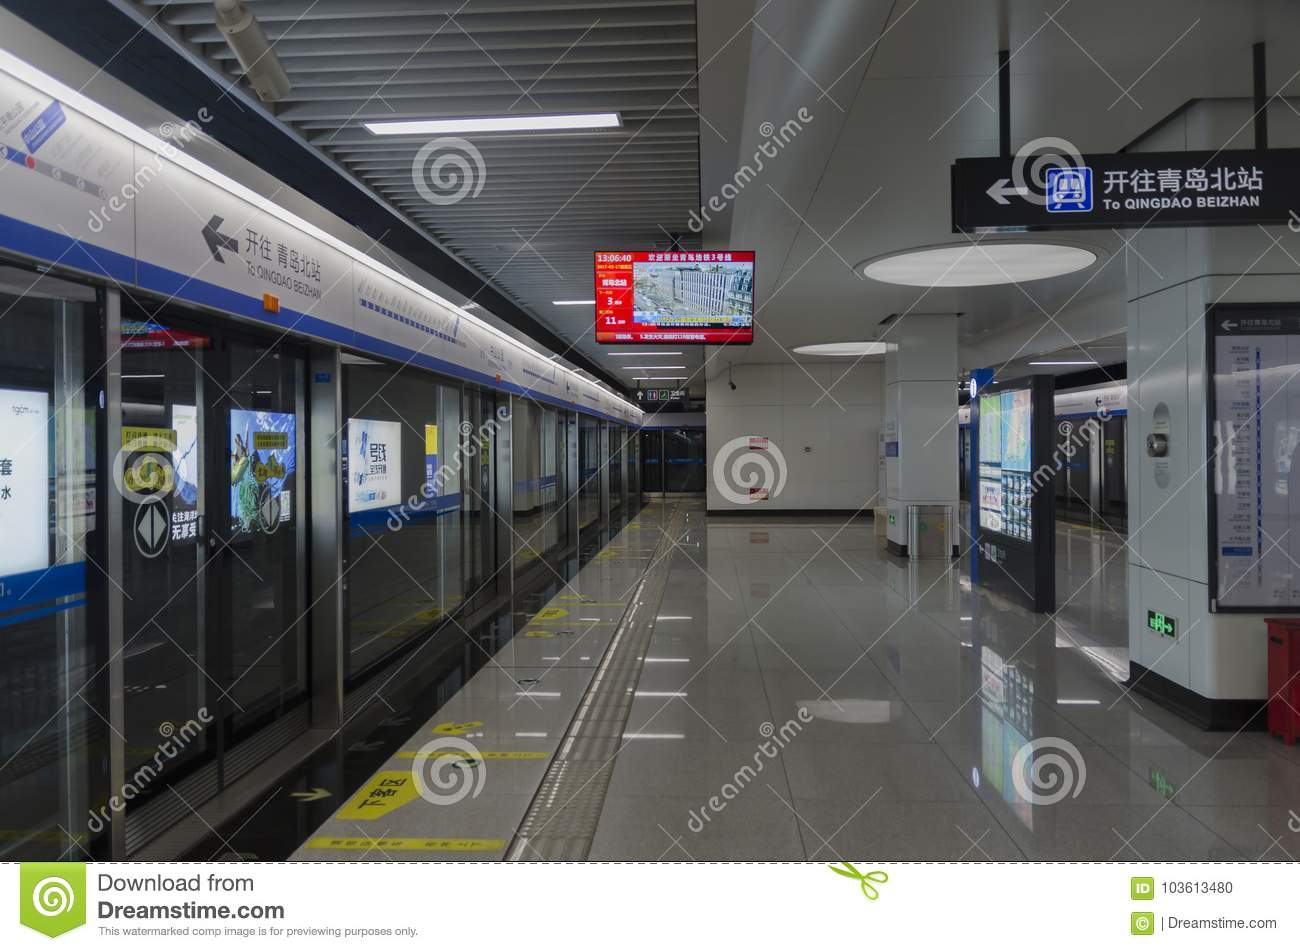 Qingdaometro in China